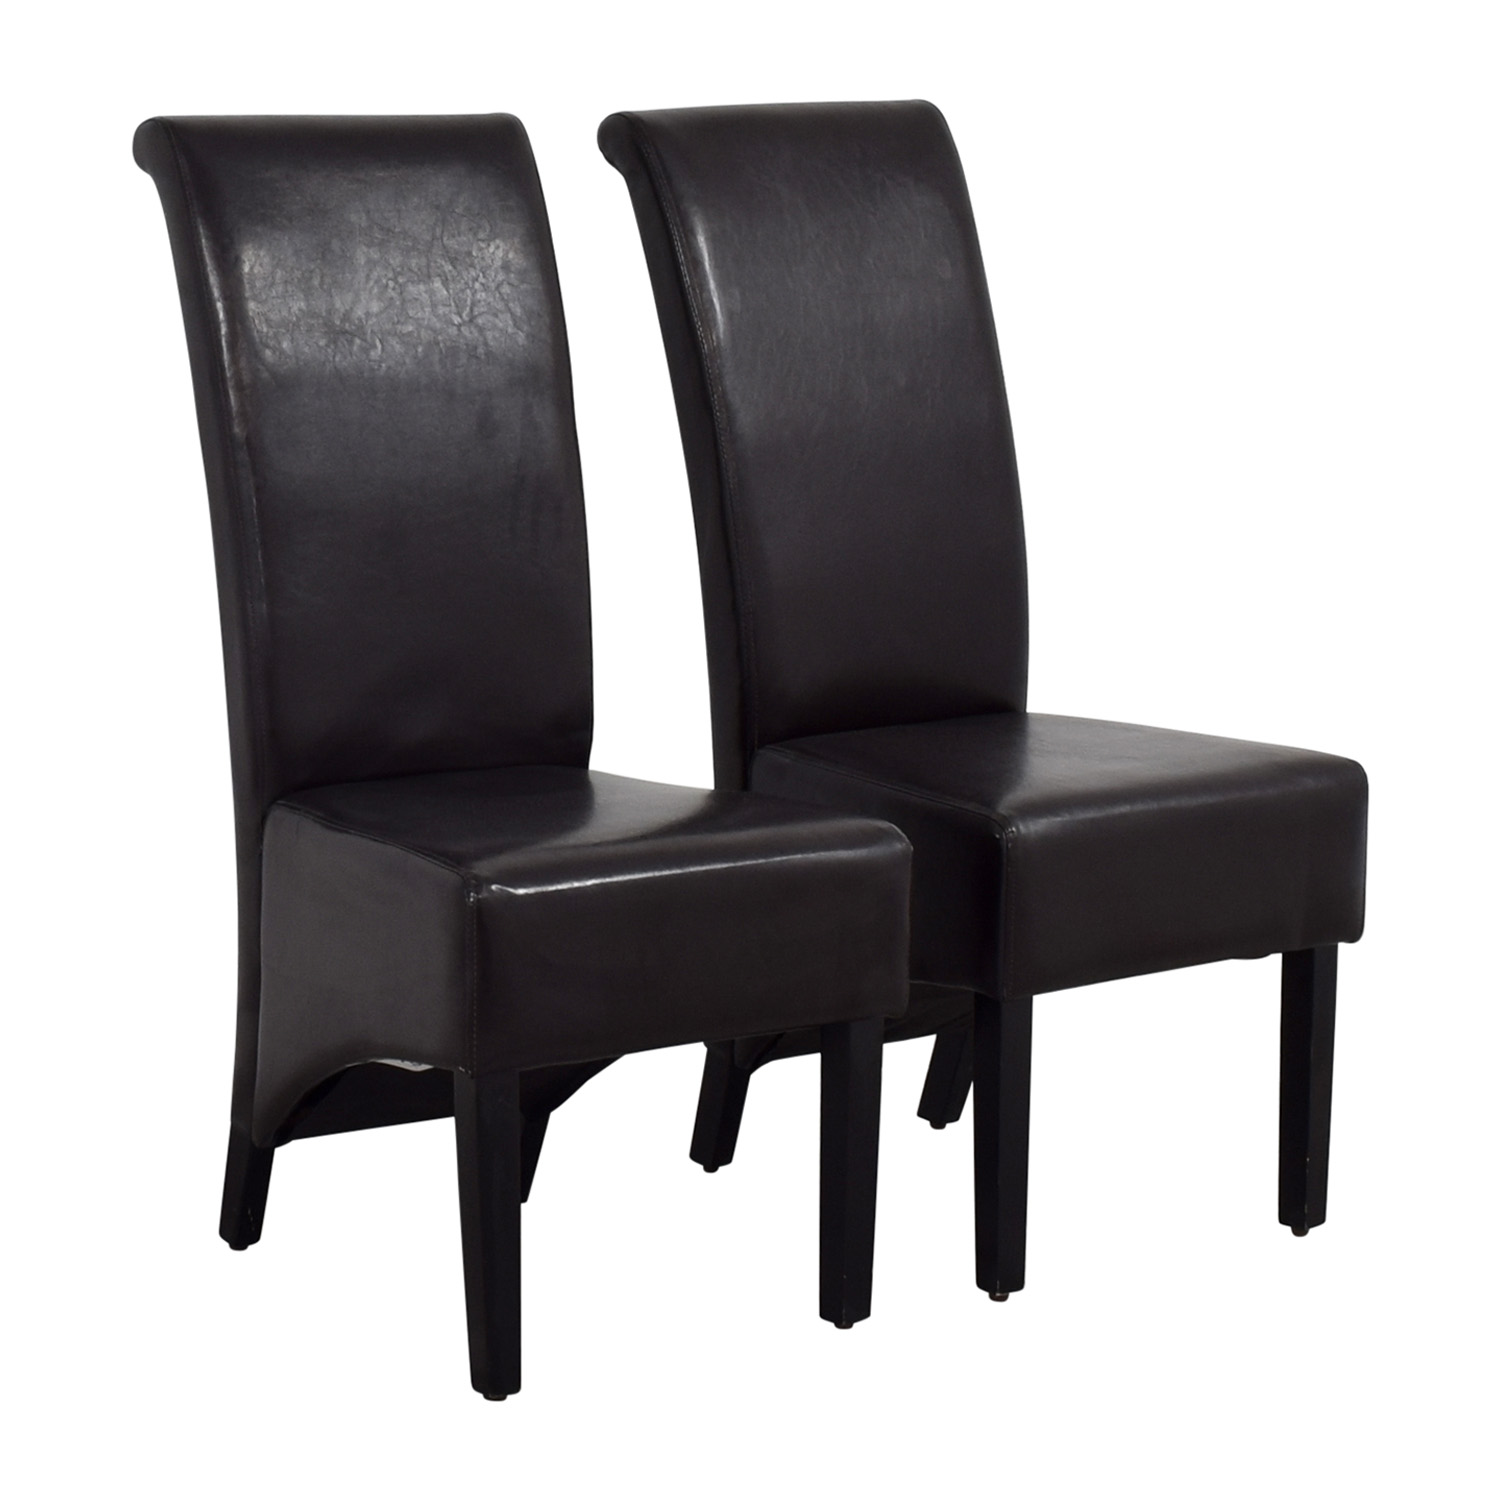 Perfect 90% OFF - Padded Brown Leatherette High Back Dining Chairs / Chairs XT48